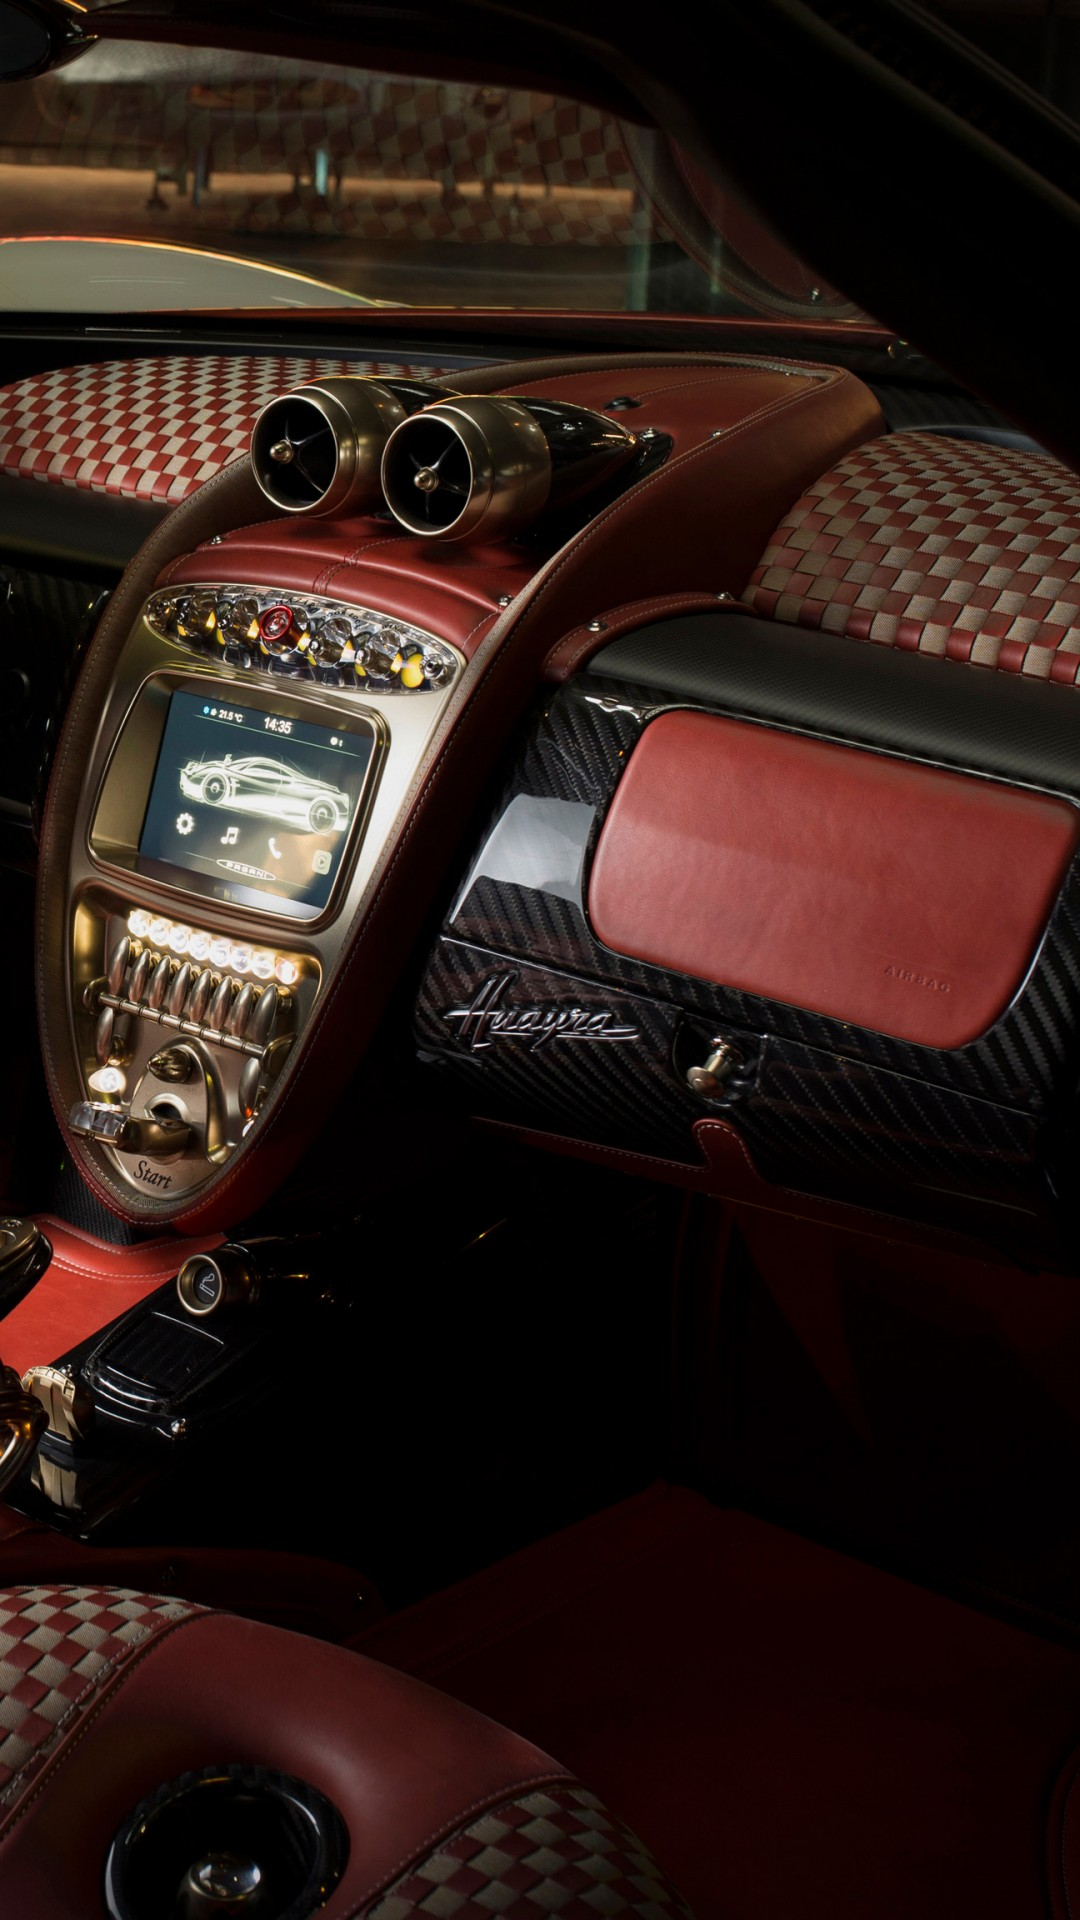 Wallpaper Pagani Huayra Lampo Interior 4k Cars Bikes 17120